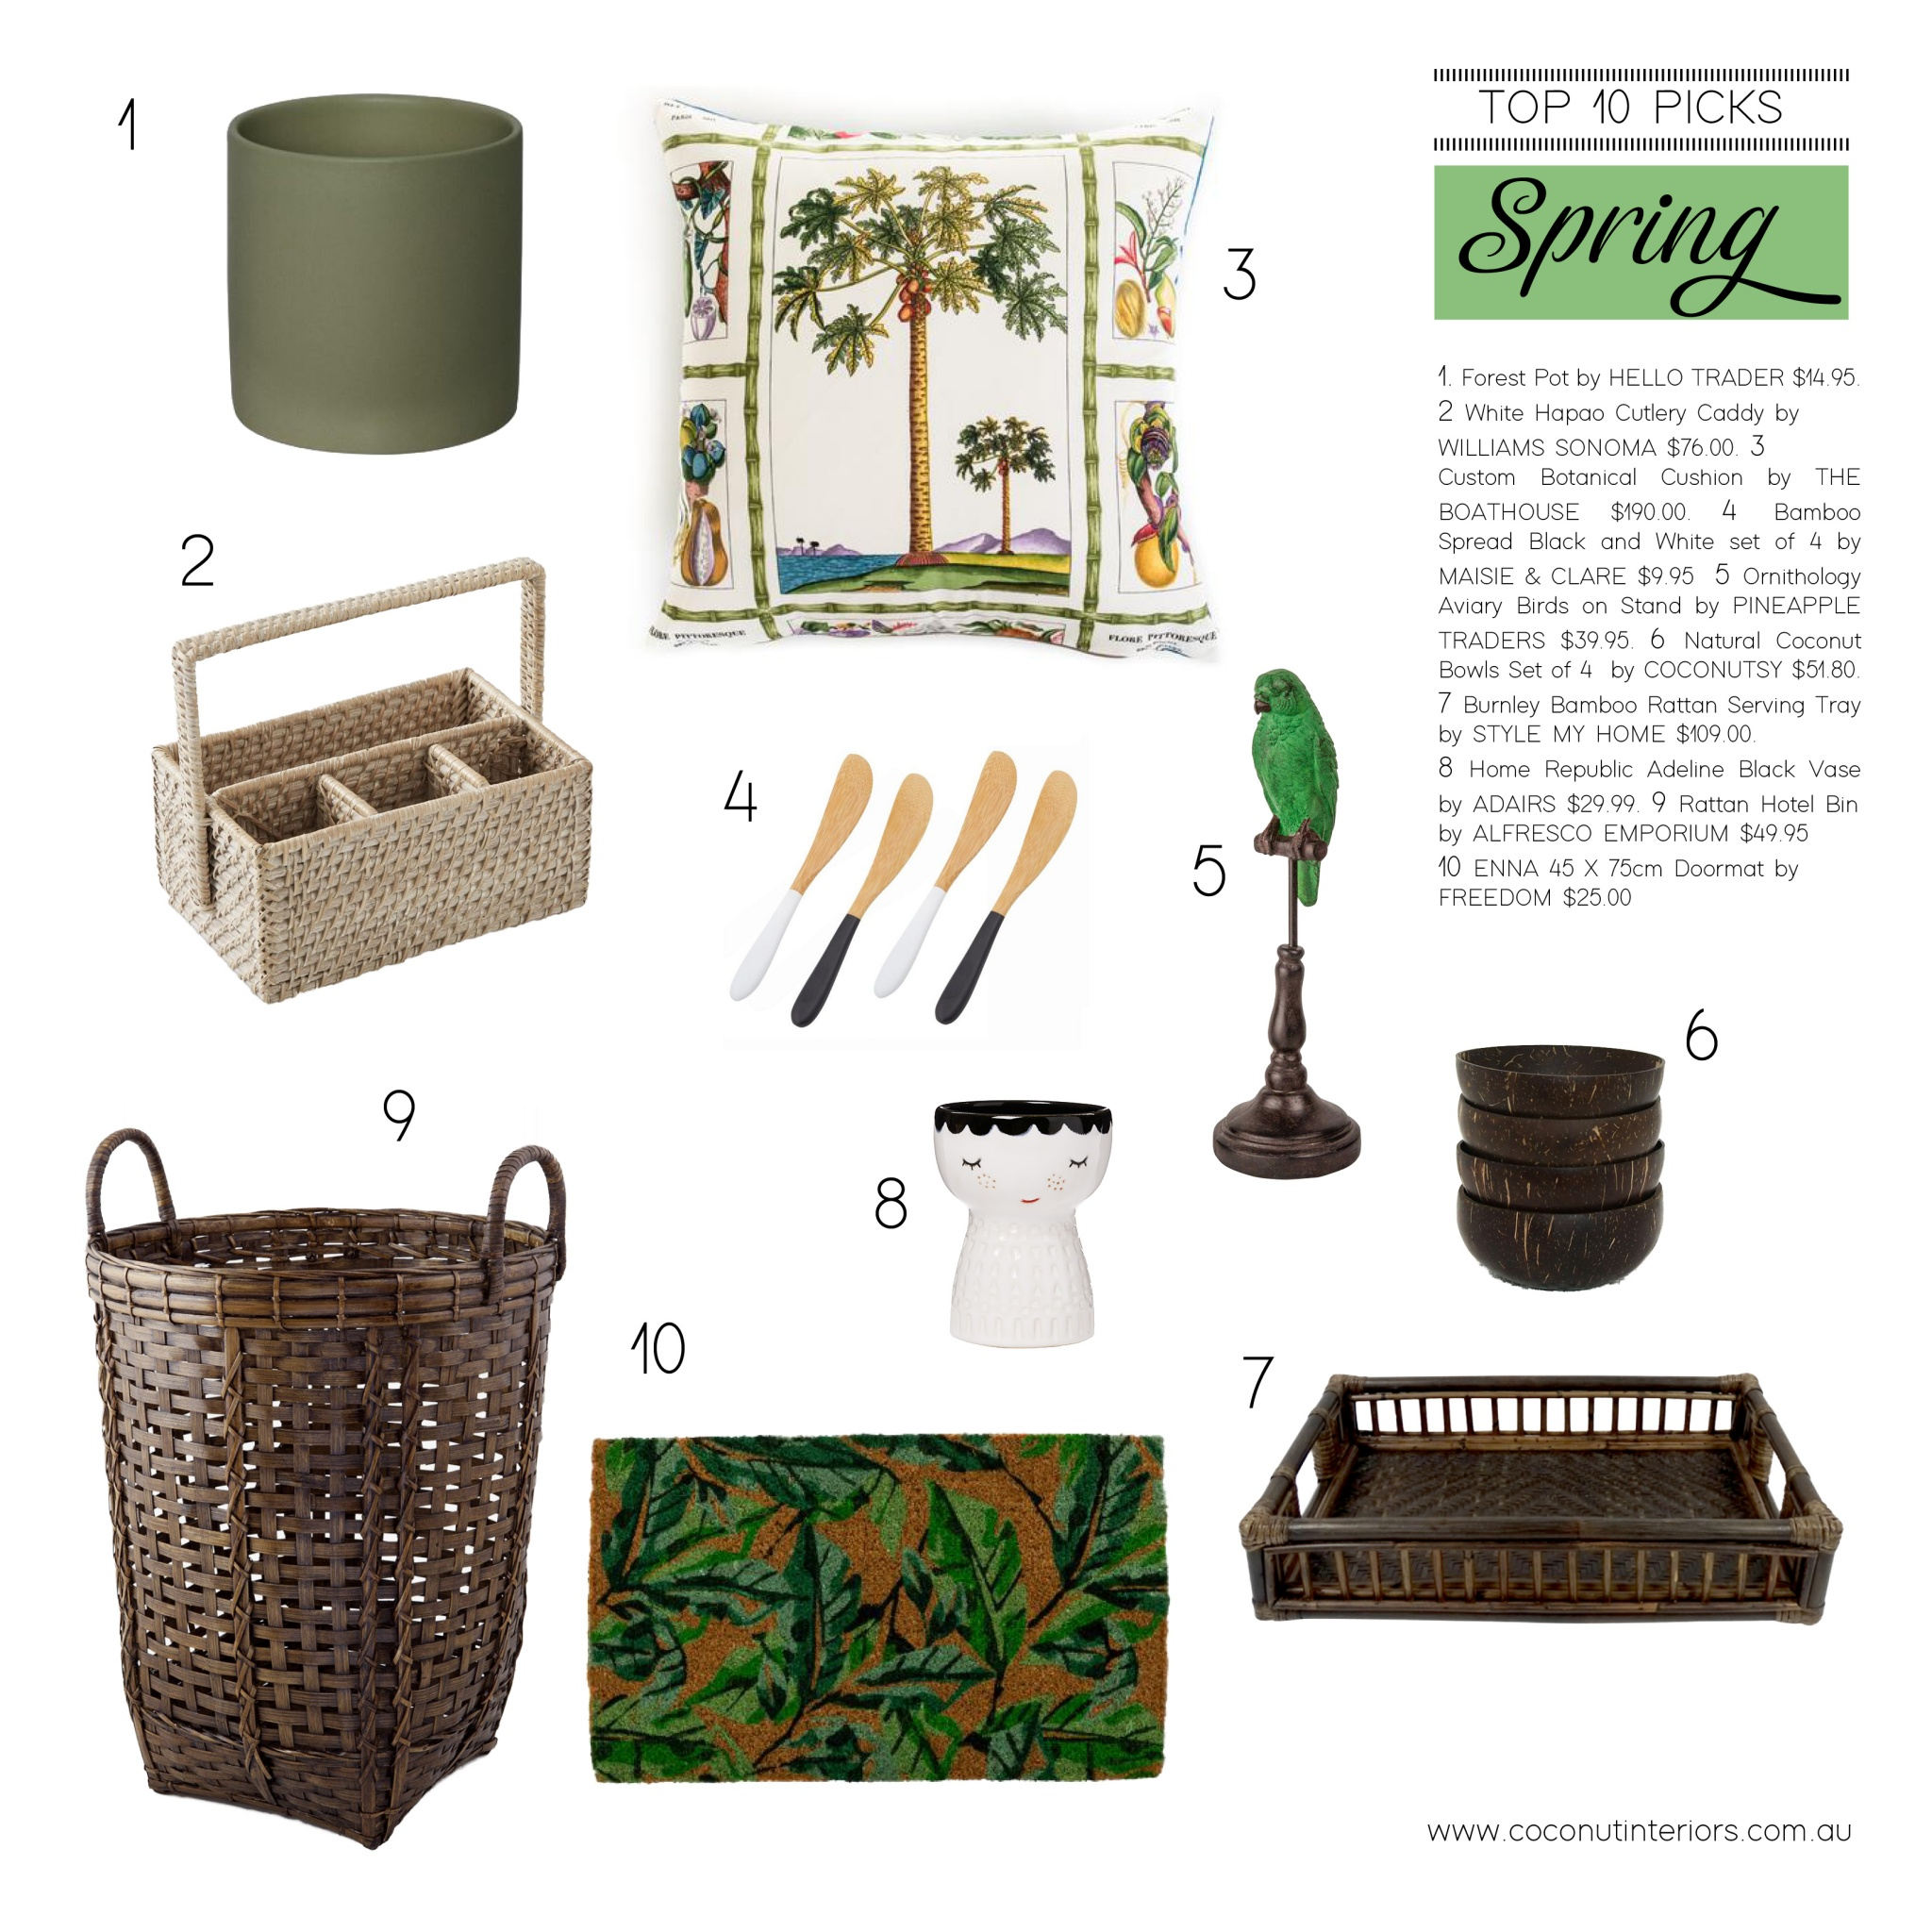 My Top 10 Spring Decor Picks